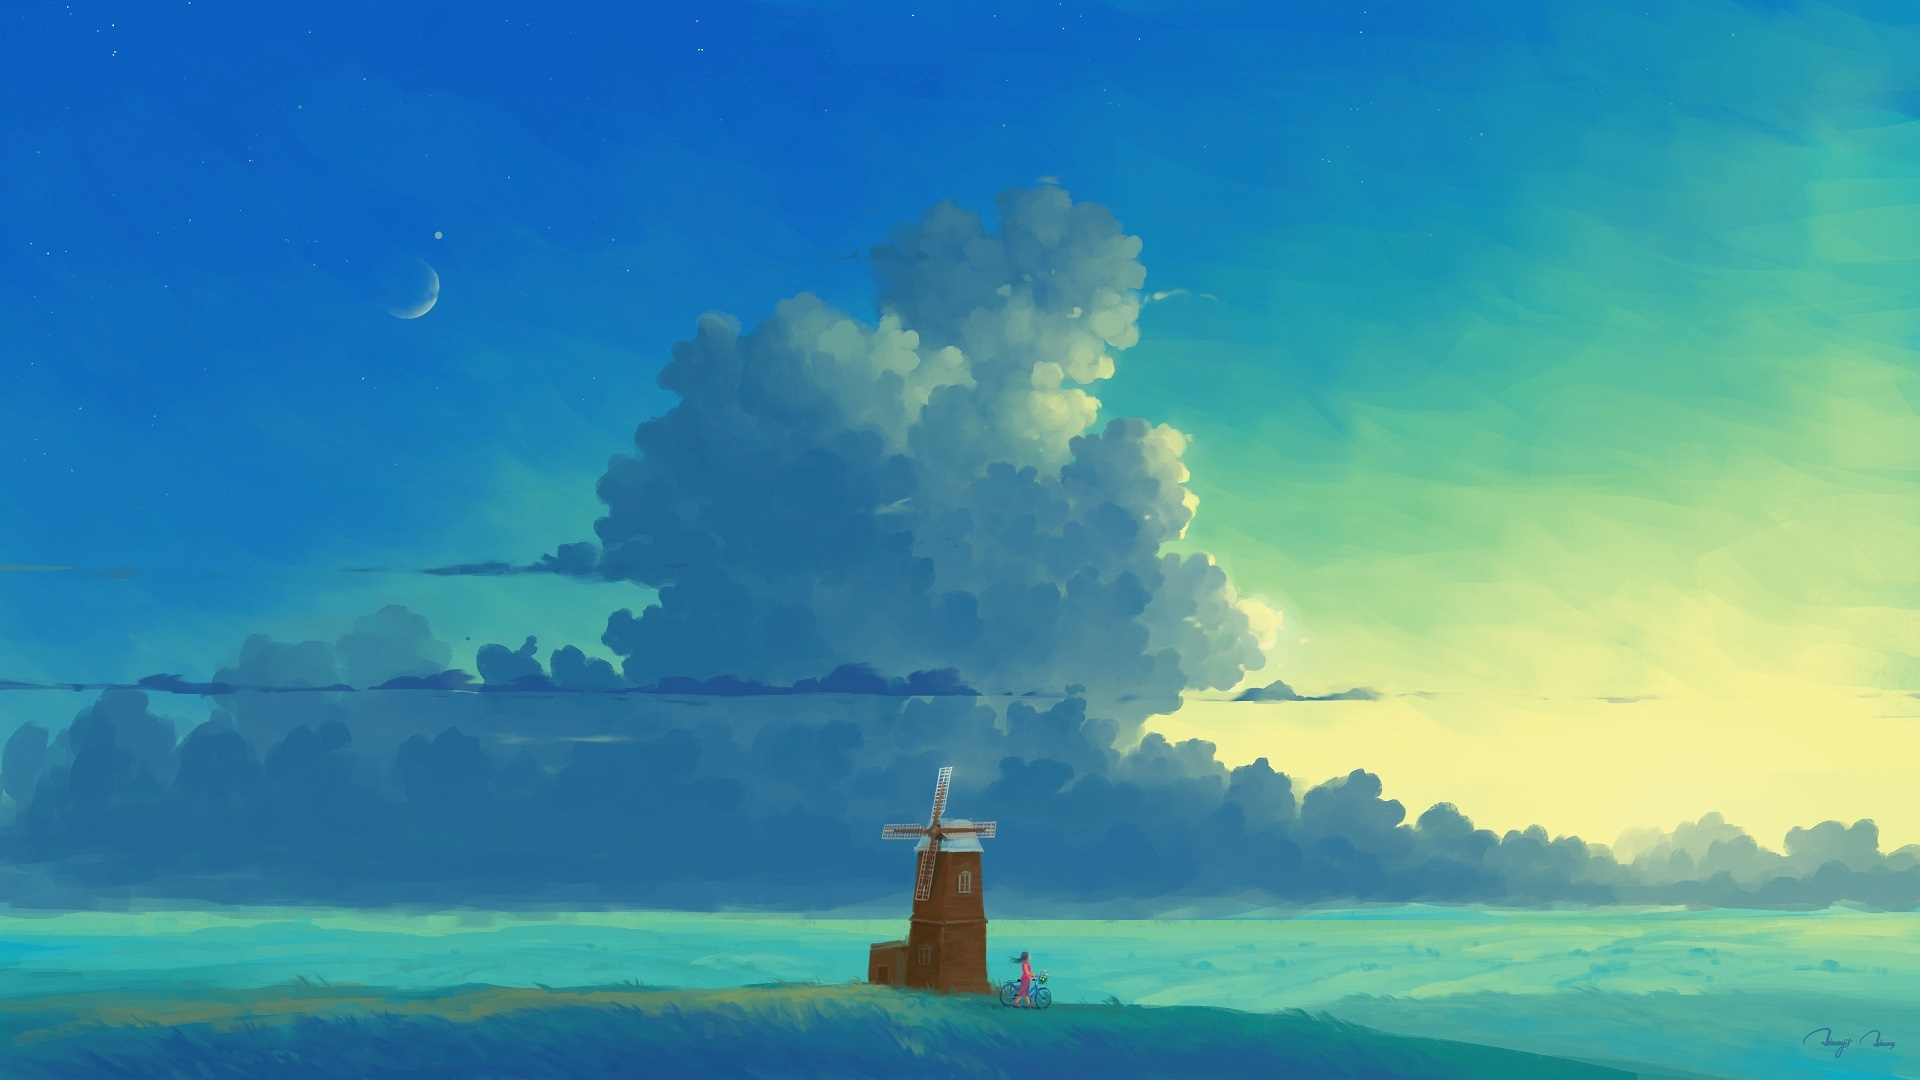 Anime Landscape With Clouds 1080p wallpaper